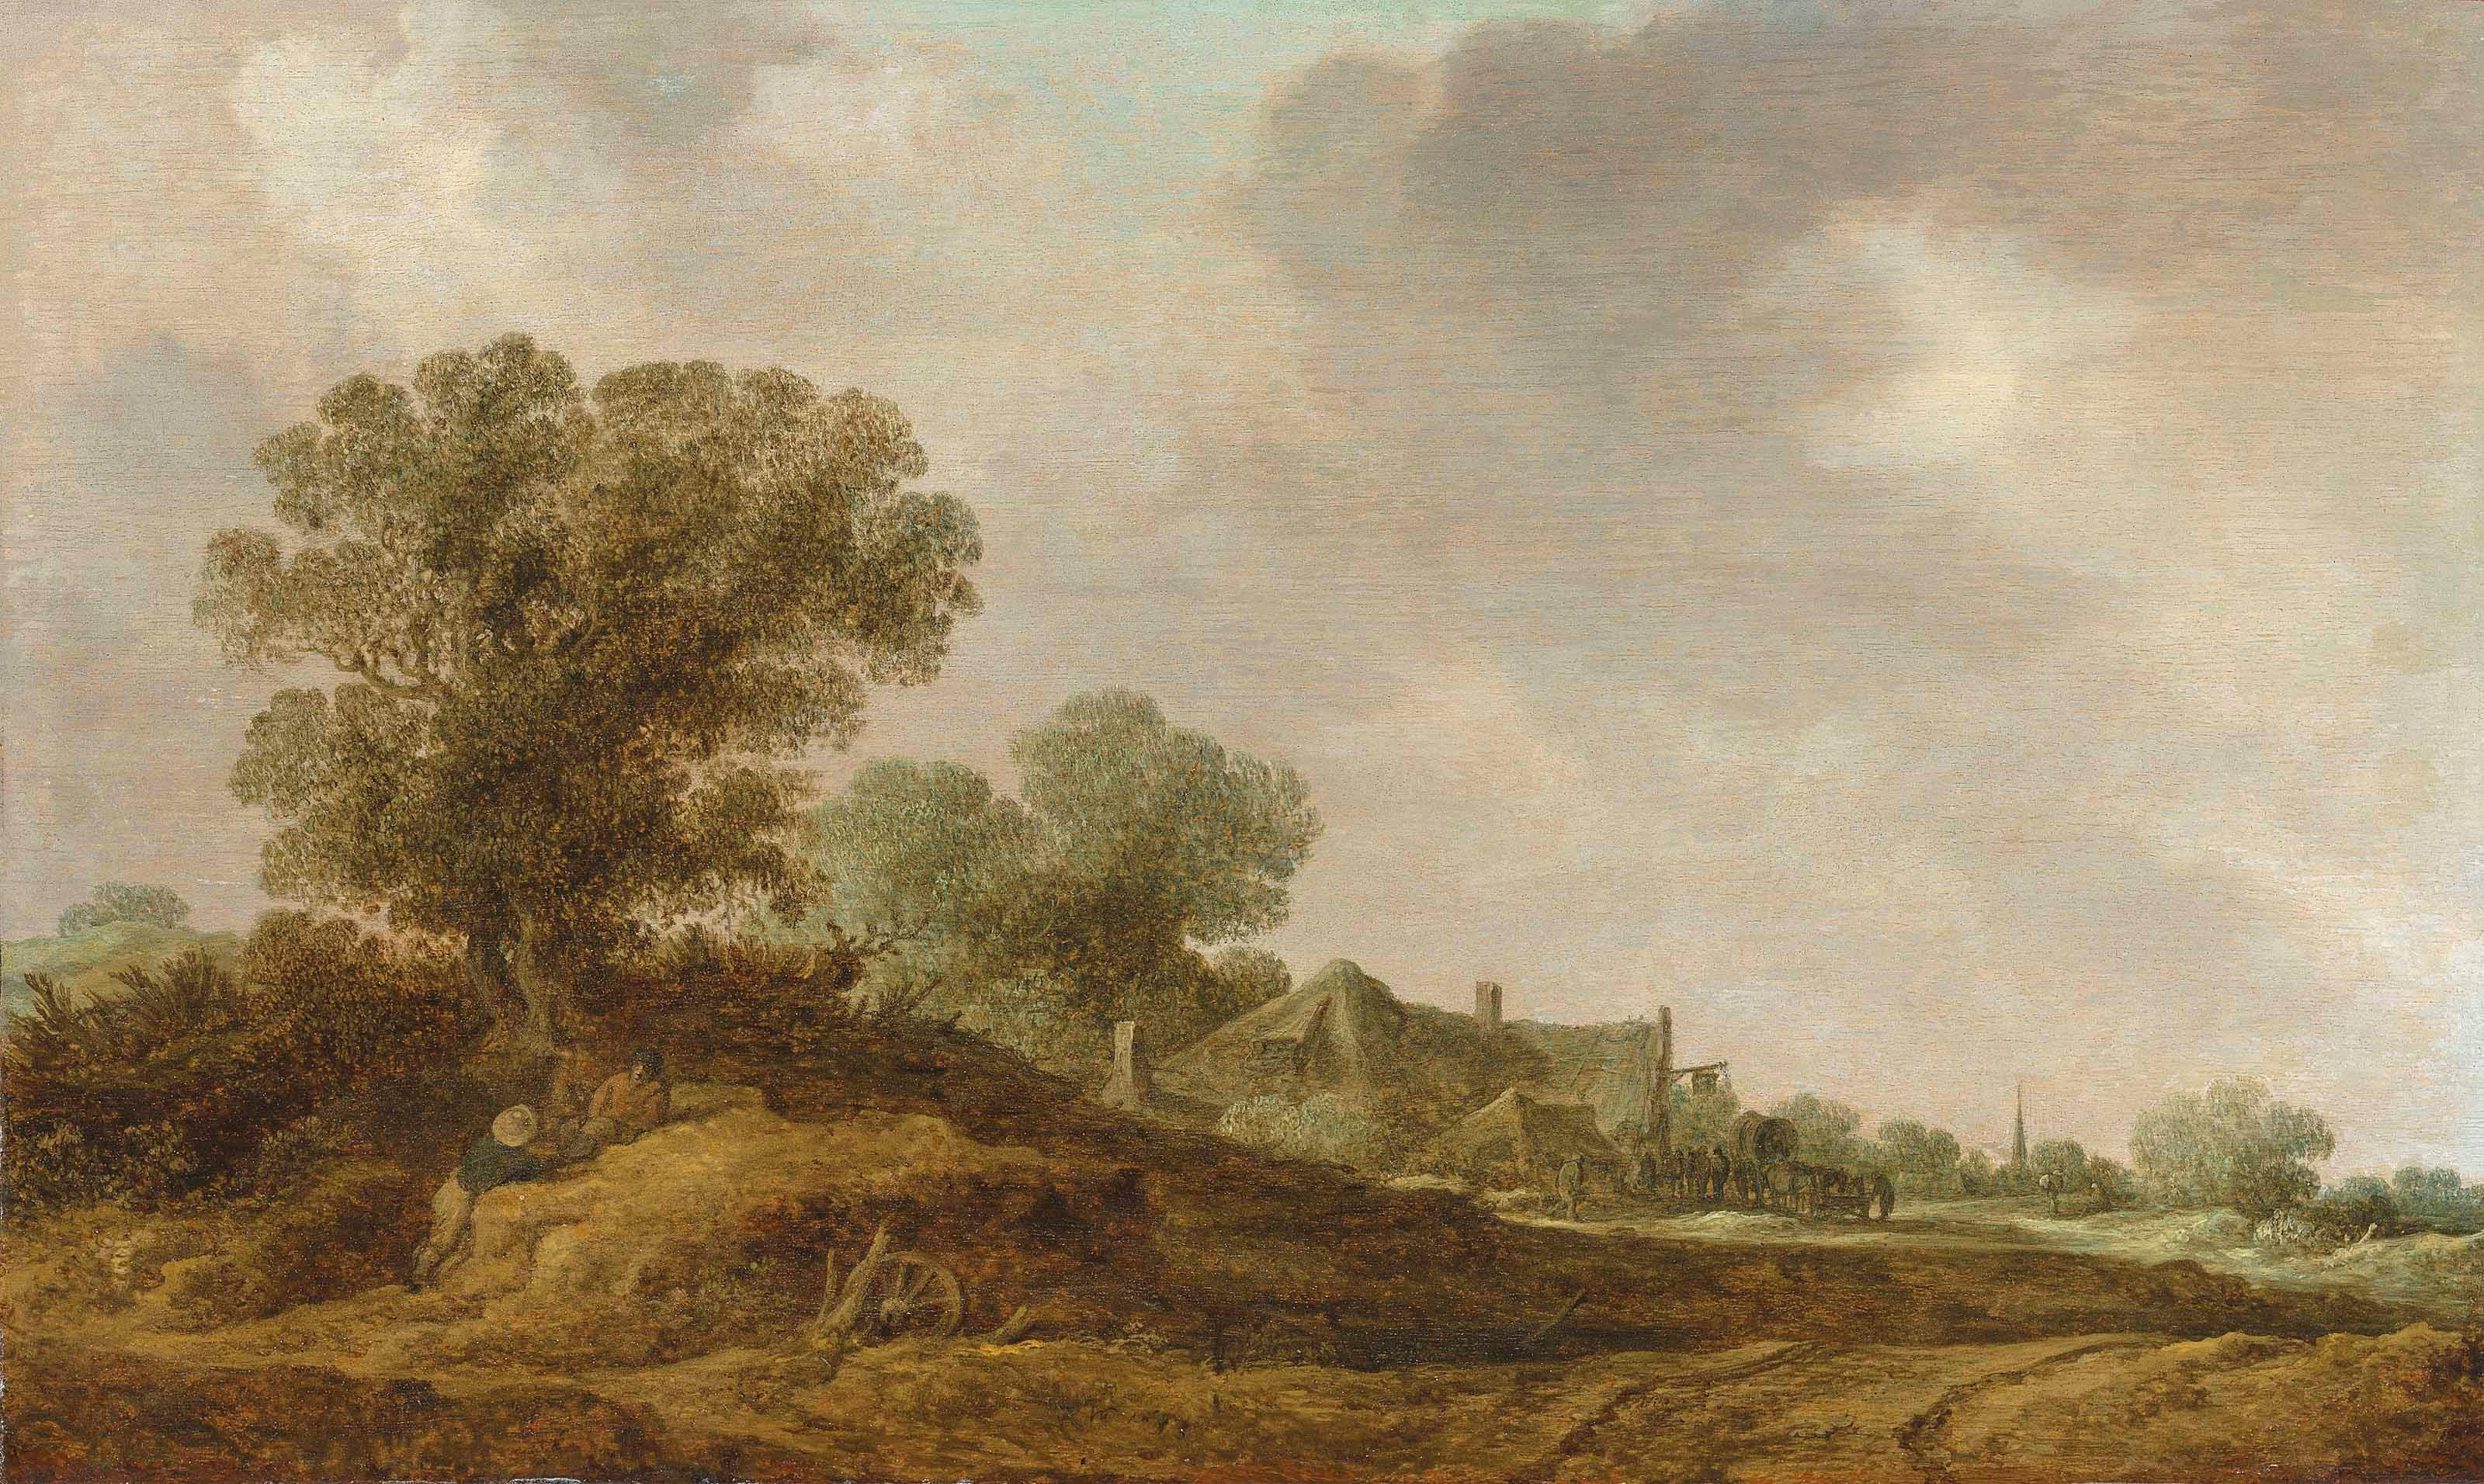 A Dune Landscape With Figures Resting By a Path, Boats On a Lake Beyond by Jan van Goyen